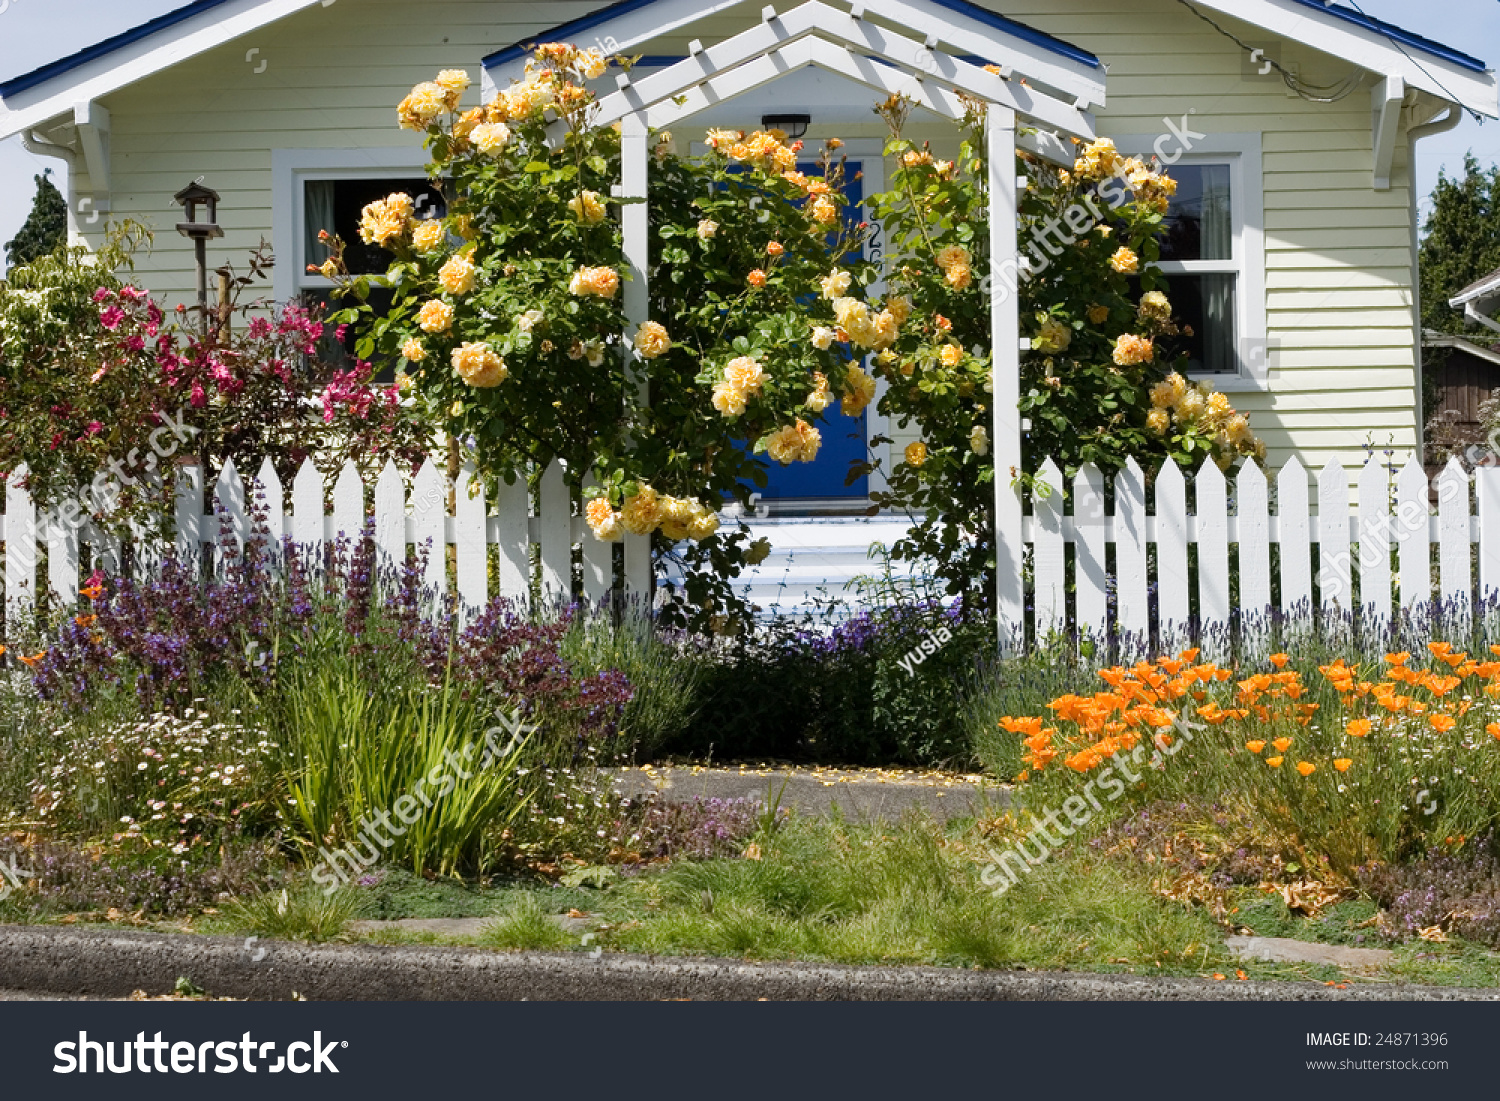 House with bright flowers in the front yard stock photo - Flowers in the front yard ...